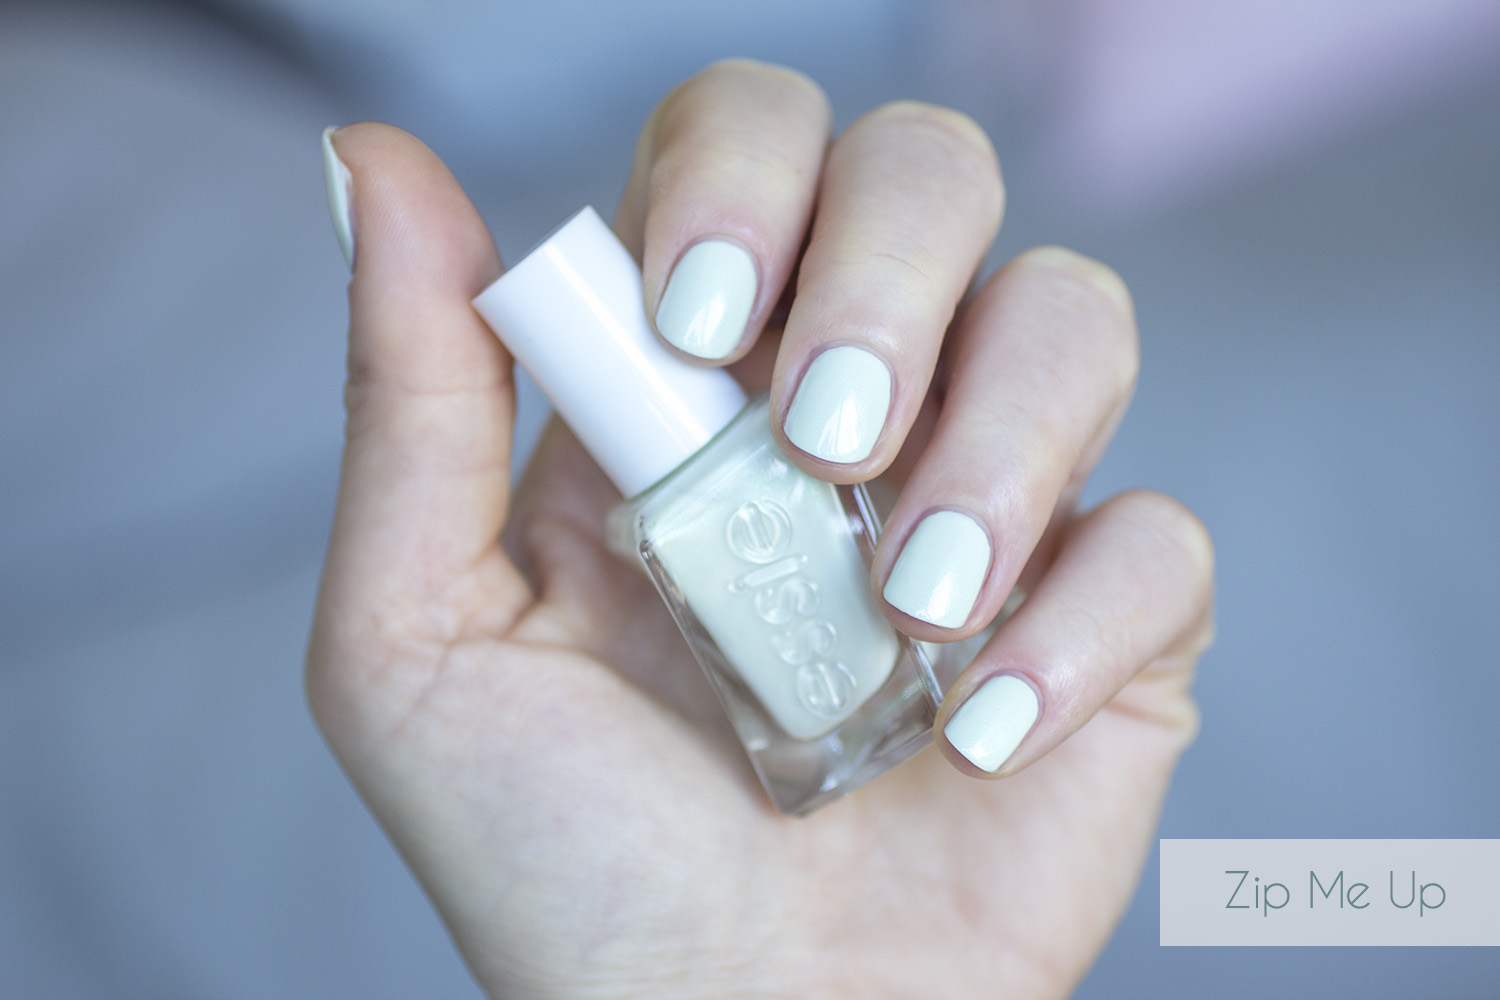 Gel Couture Zip Me Up - Essie